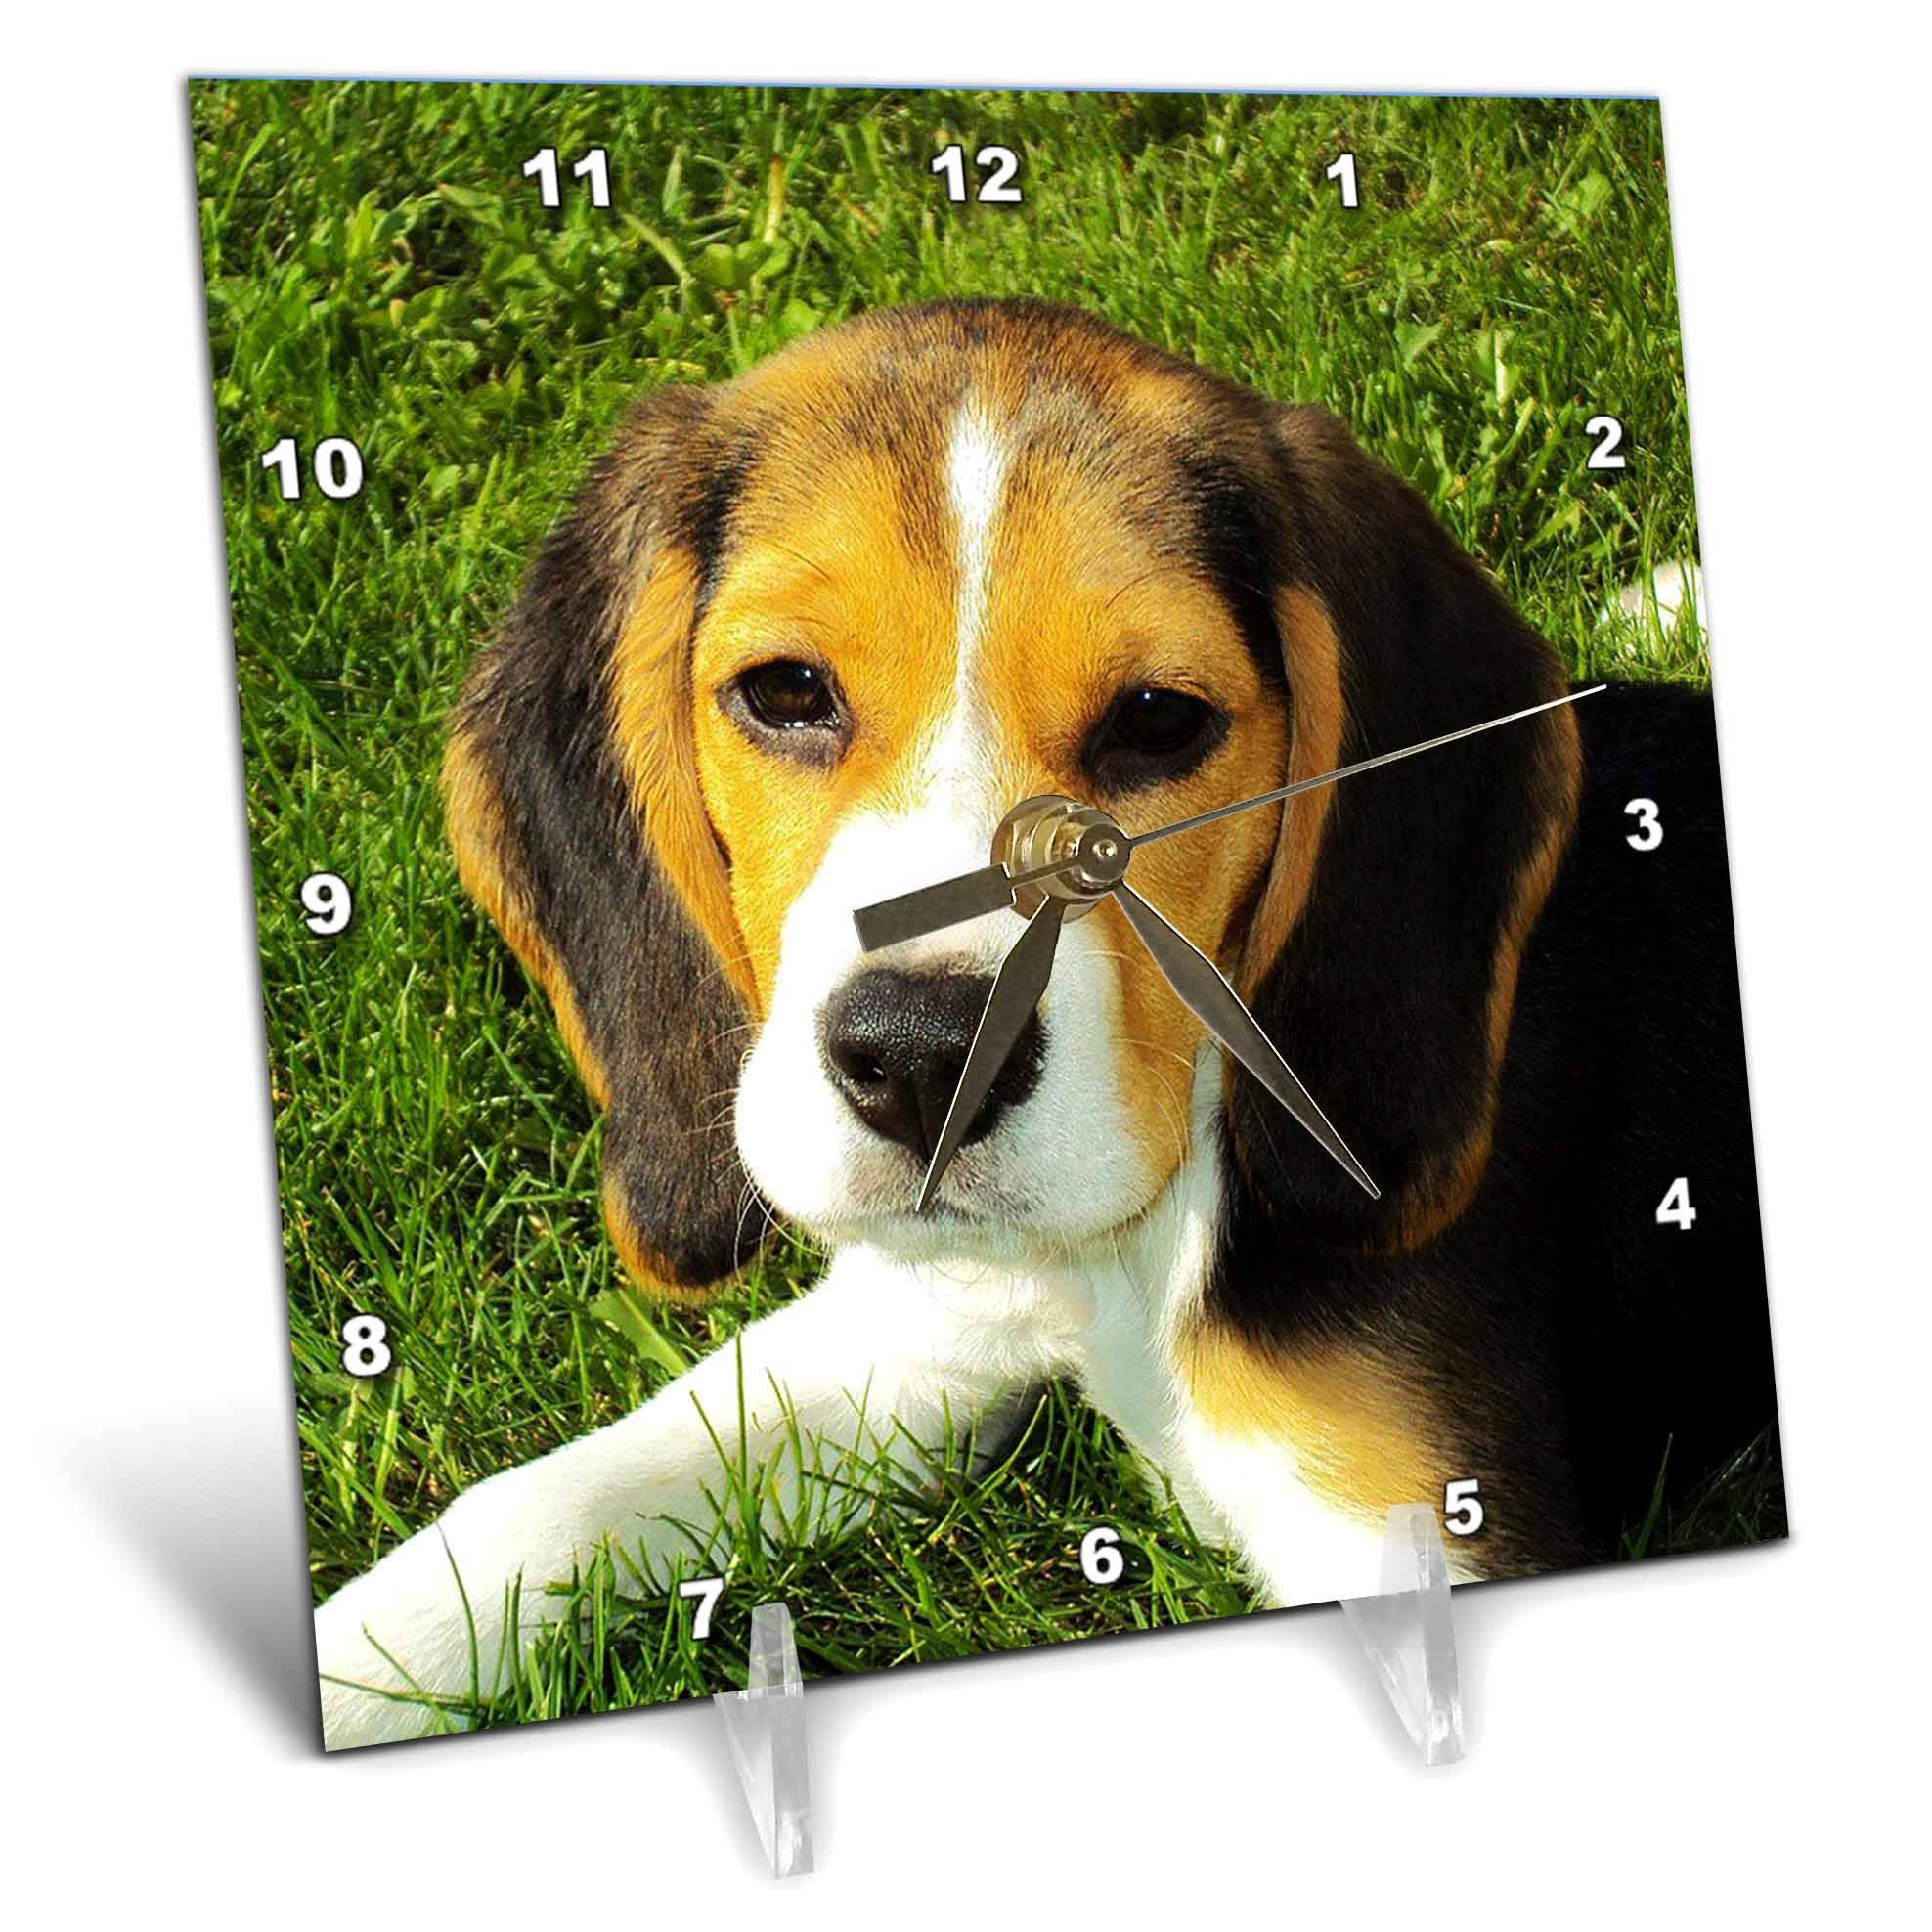 3dRose Beagle, Dog, Puppy, Animal, Pet - Desk Clock, 6 by 6-inch (dc_215176_1)